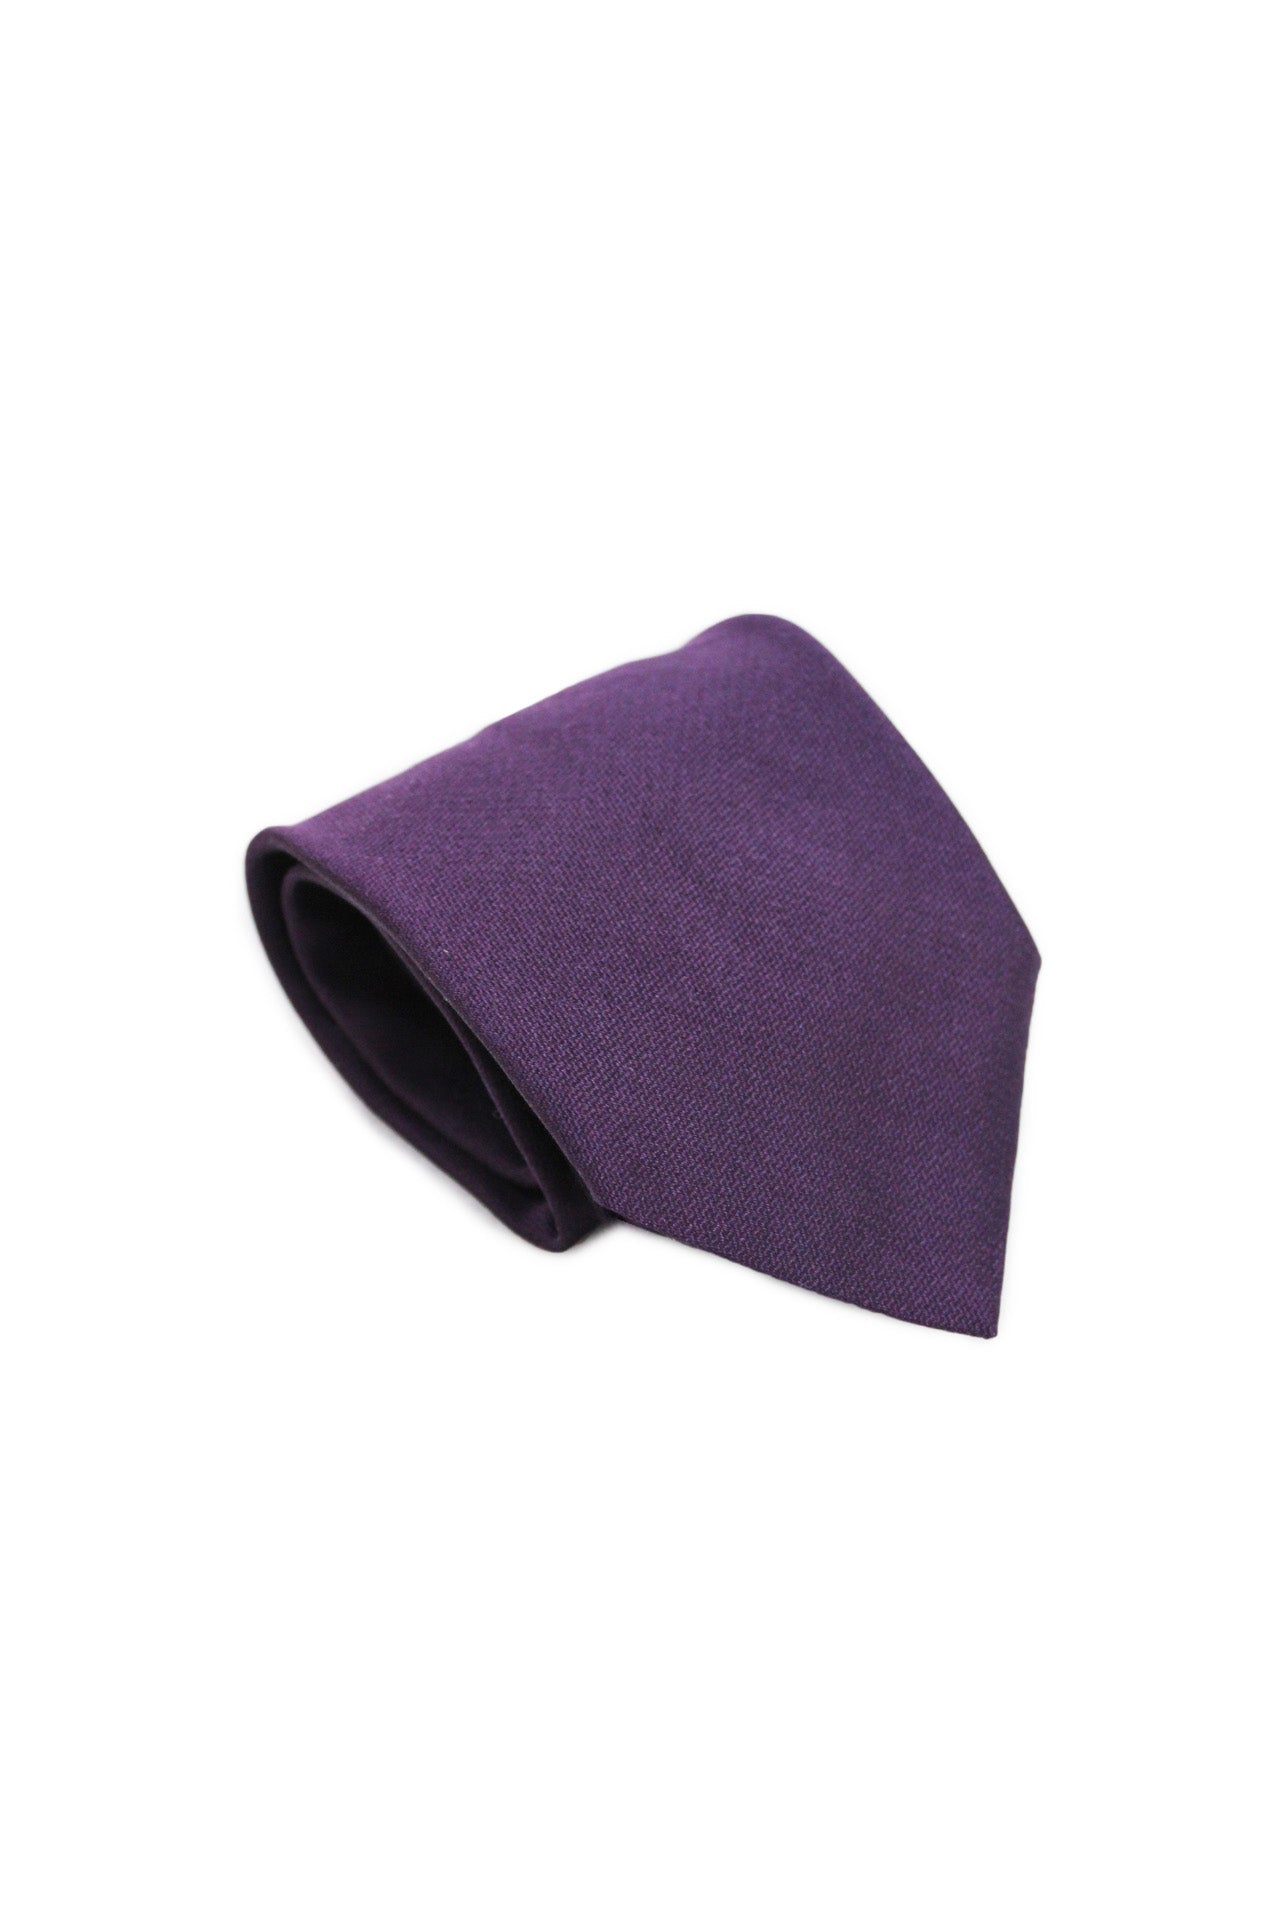 valentino purple silk tie. features purple exterior and wide cut.